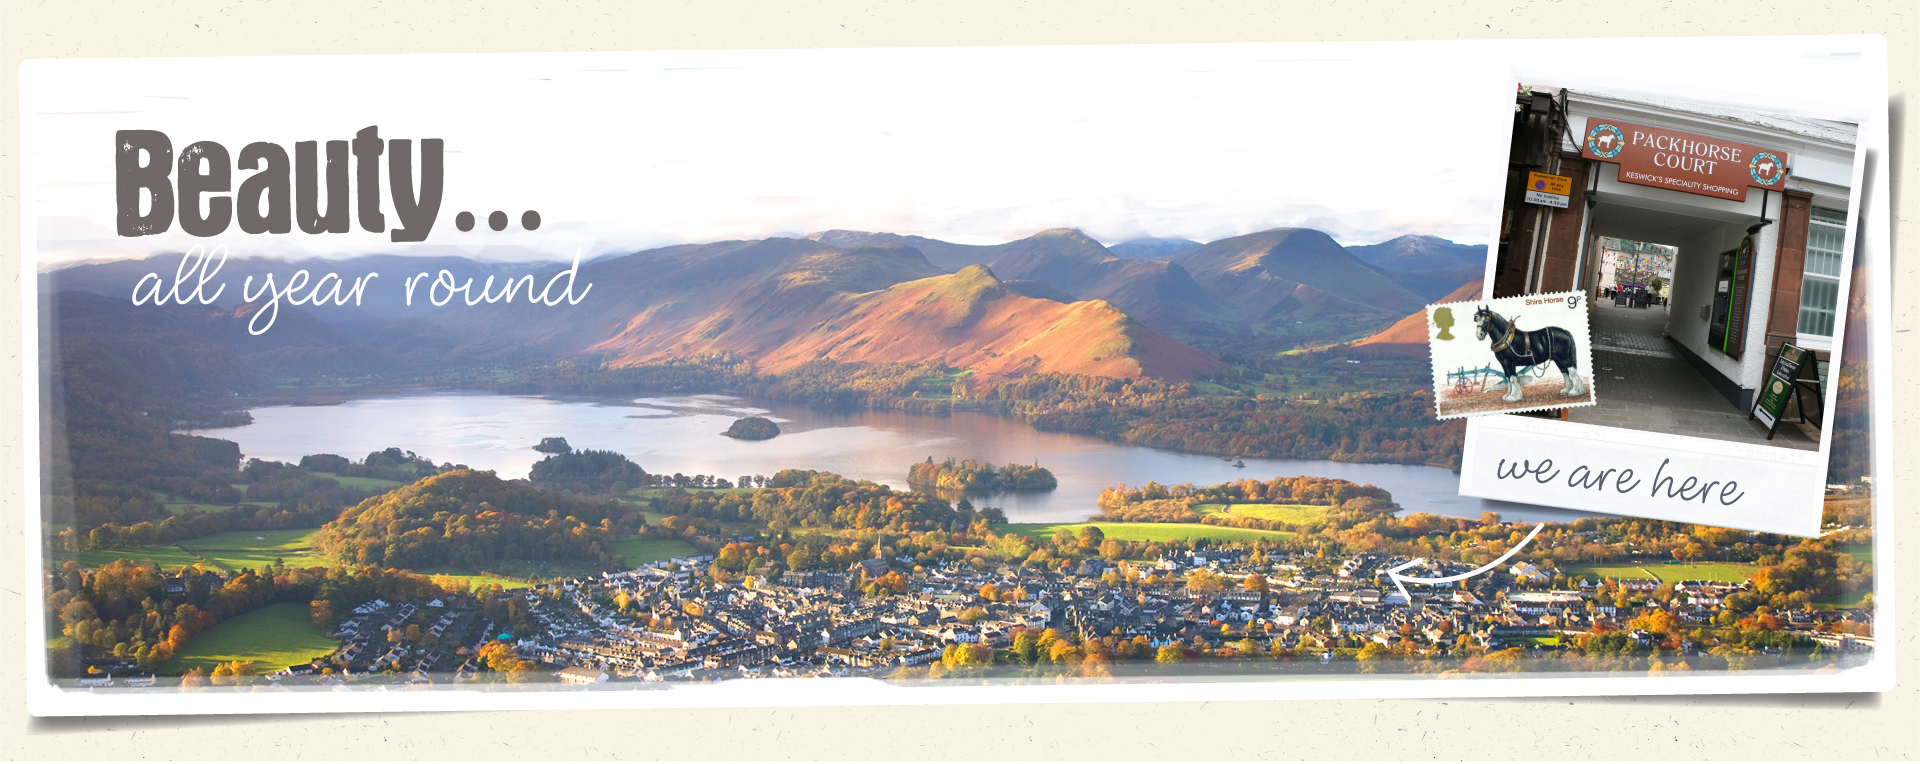 Our shopping destination is located in beautiful Keswick